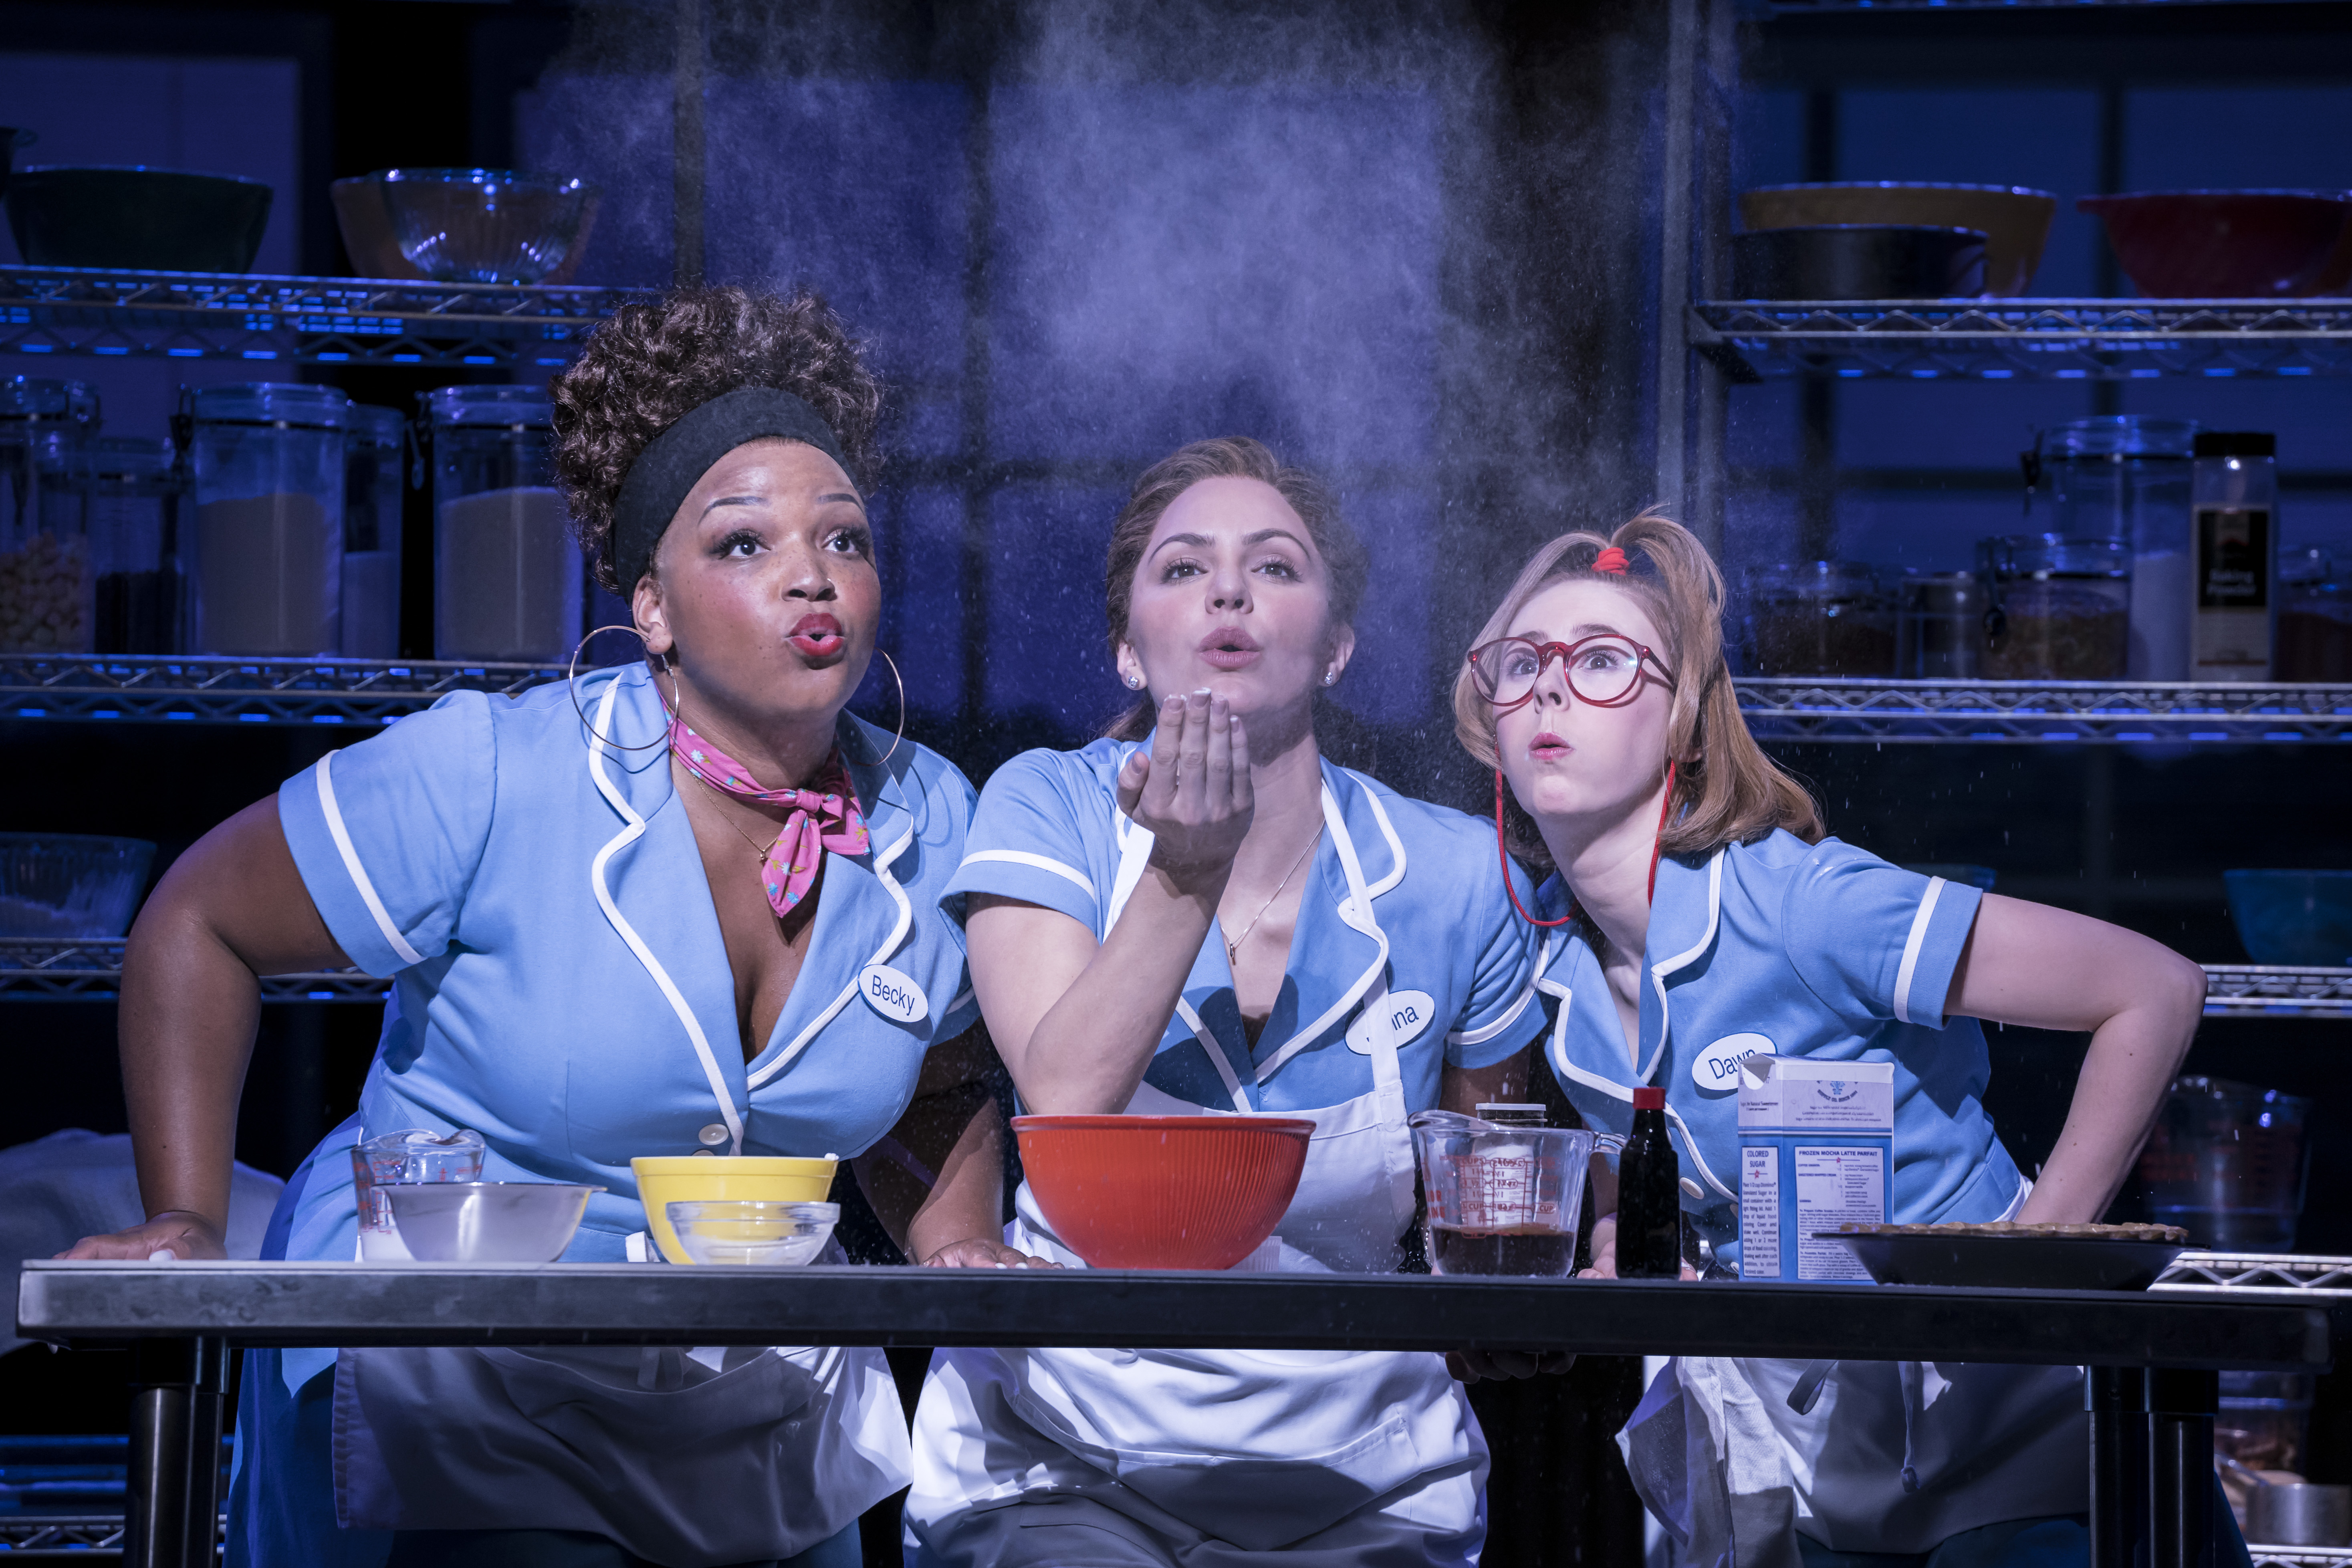 London S Waitress With Katharine Mcphee And Jack Mcbrayer Opens March 7 Playbill